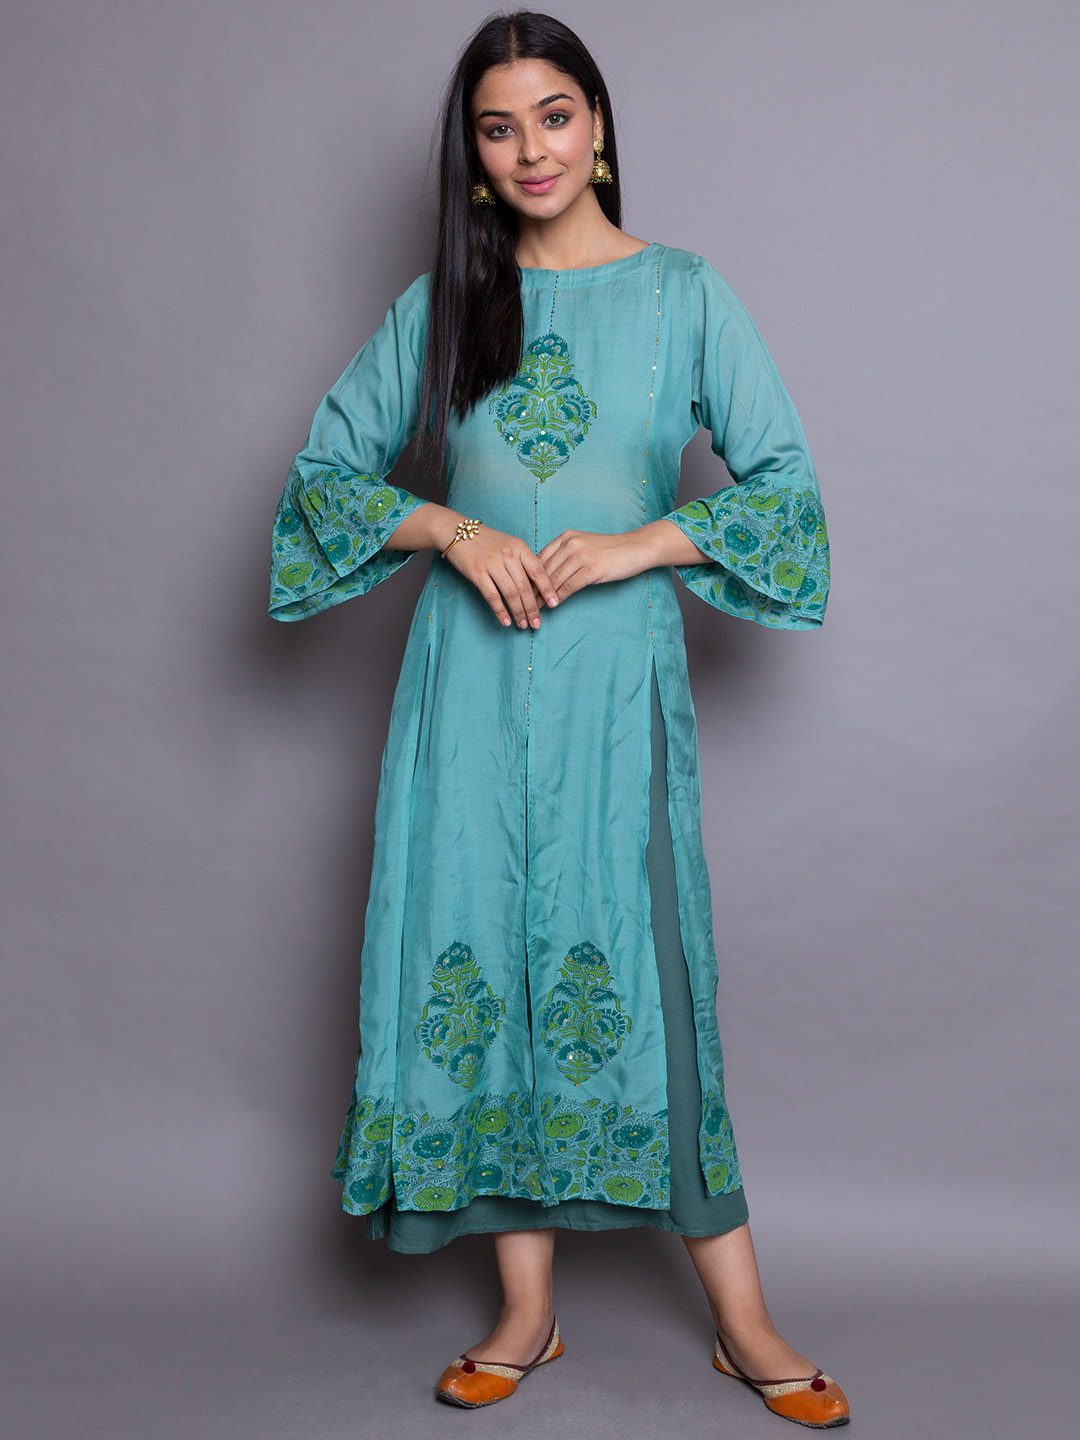 Greenish Embroidery suit